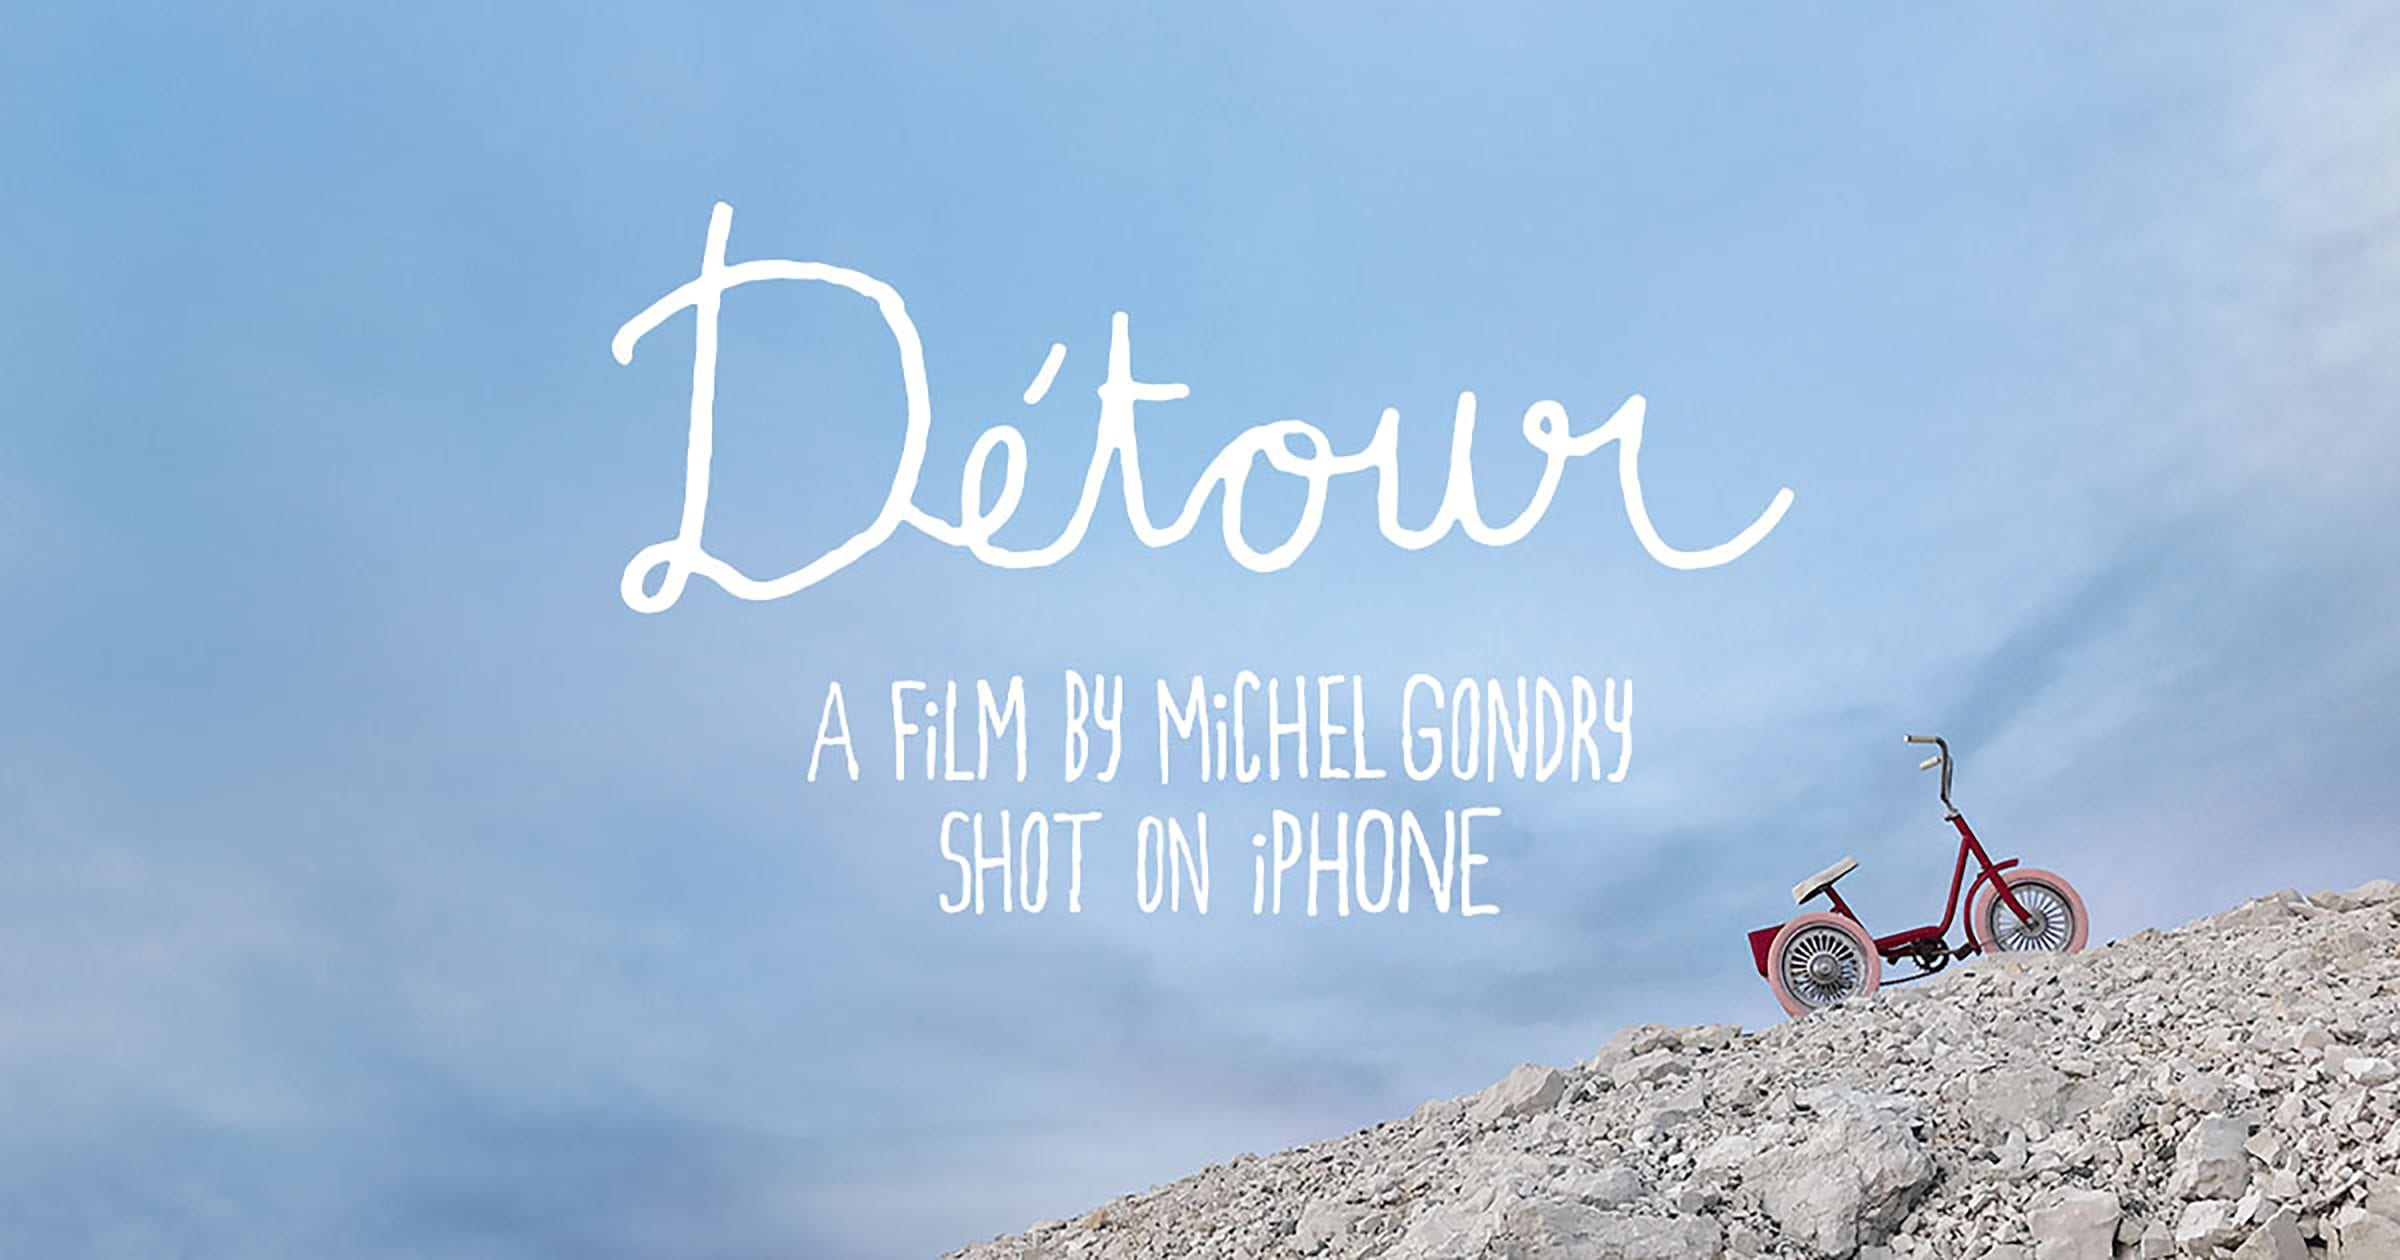 Director Michel Gondry has shot his latest short film 'Détour' entirely on his iPhone7, funded by a promotional effort by Apple.